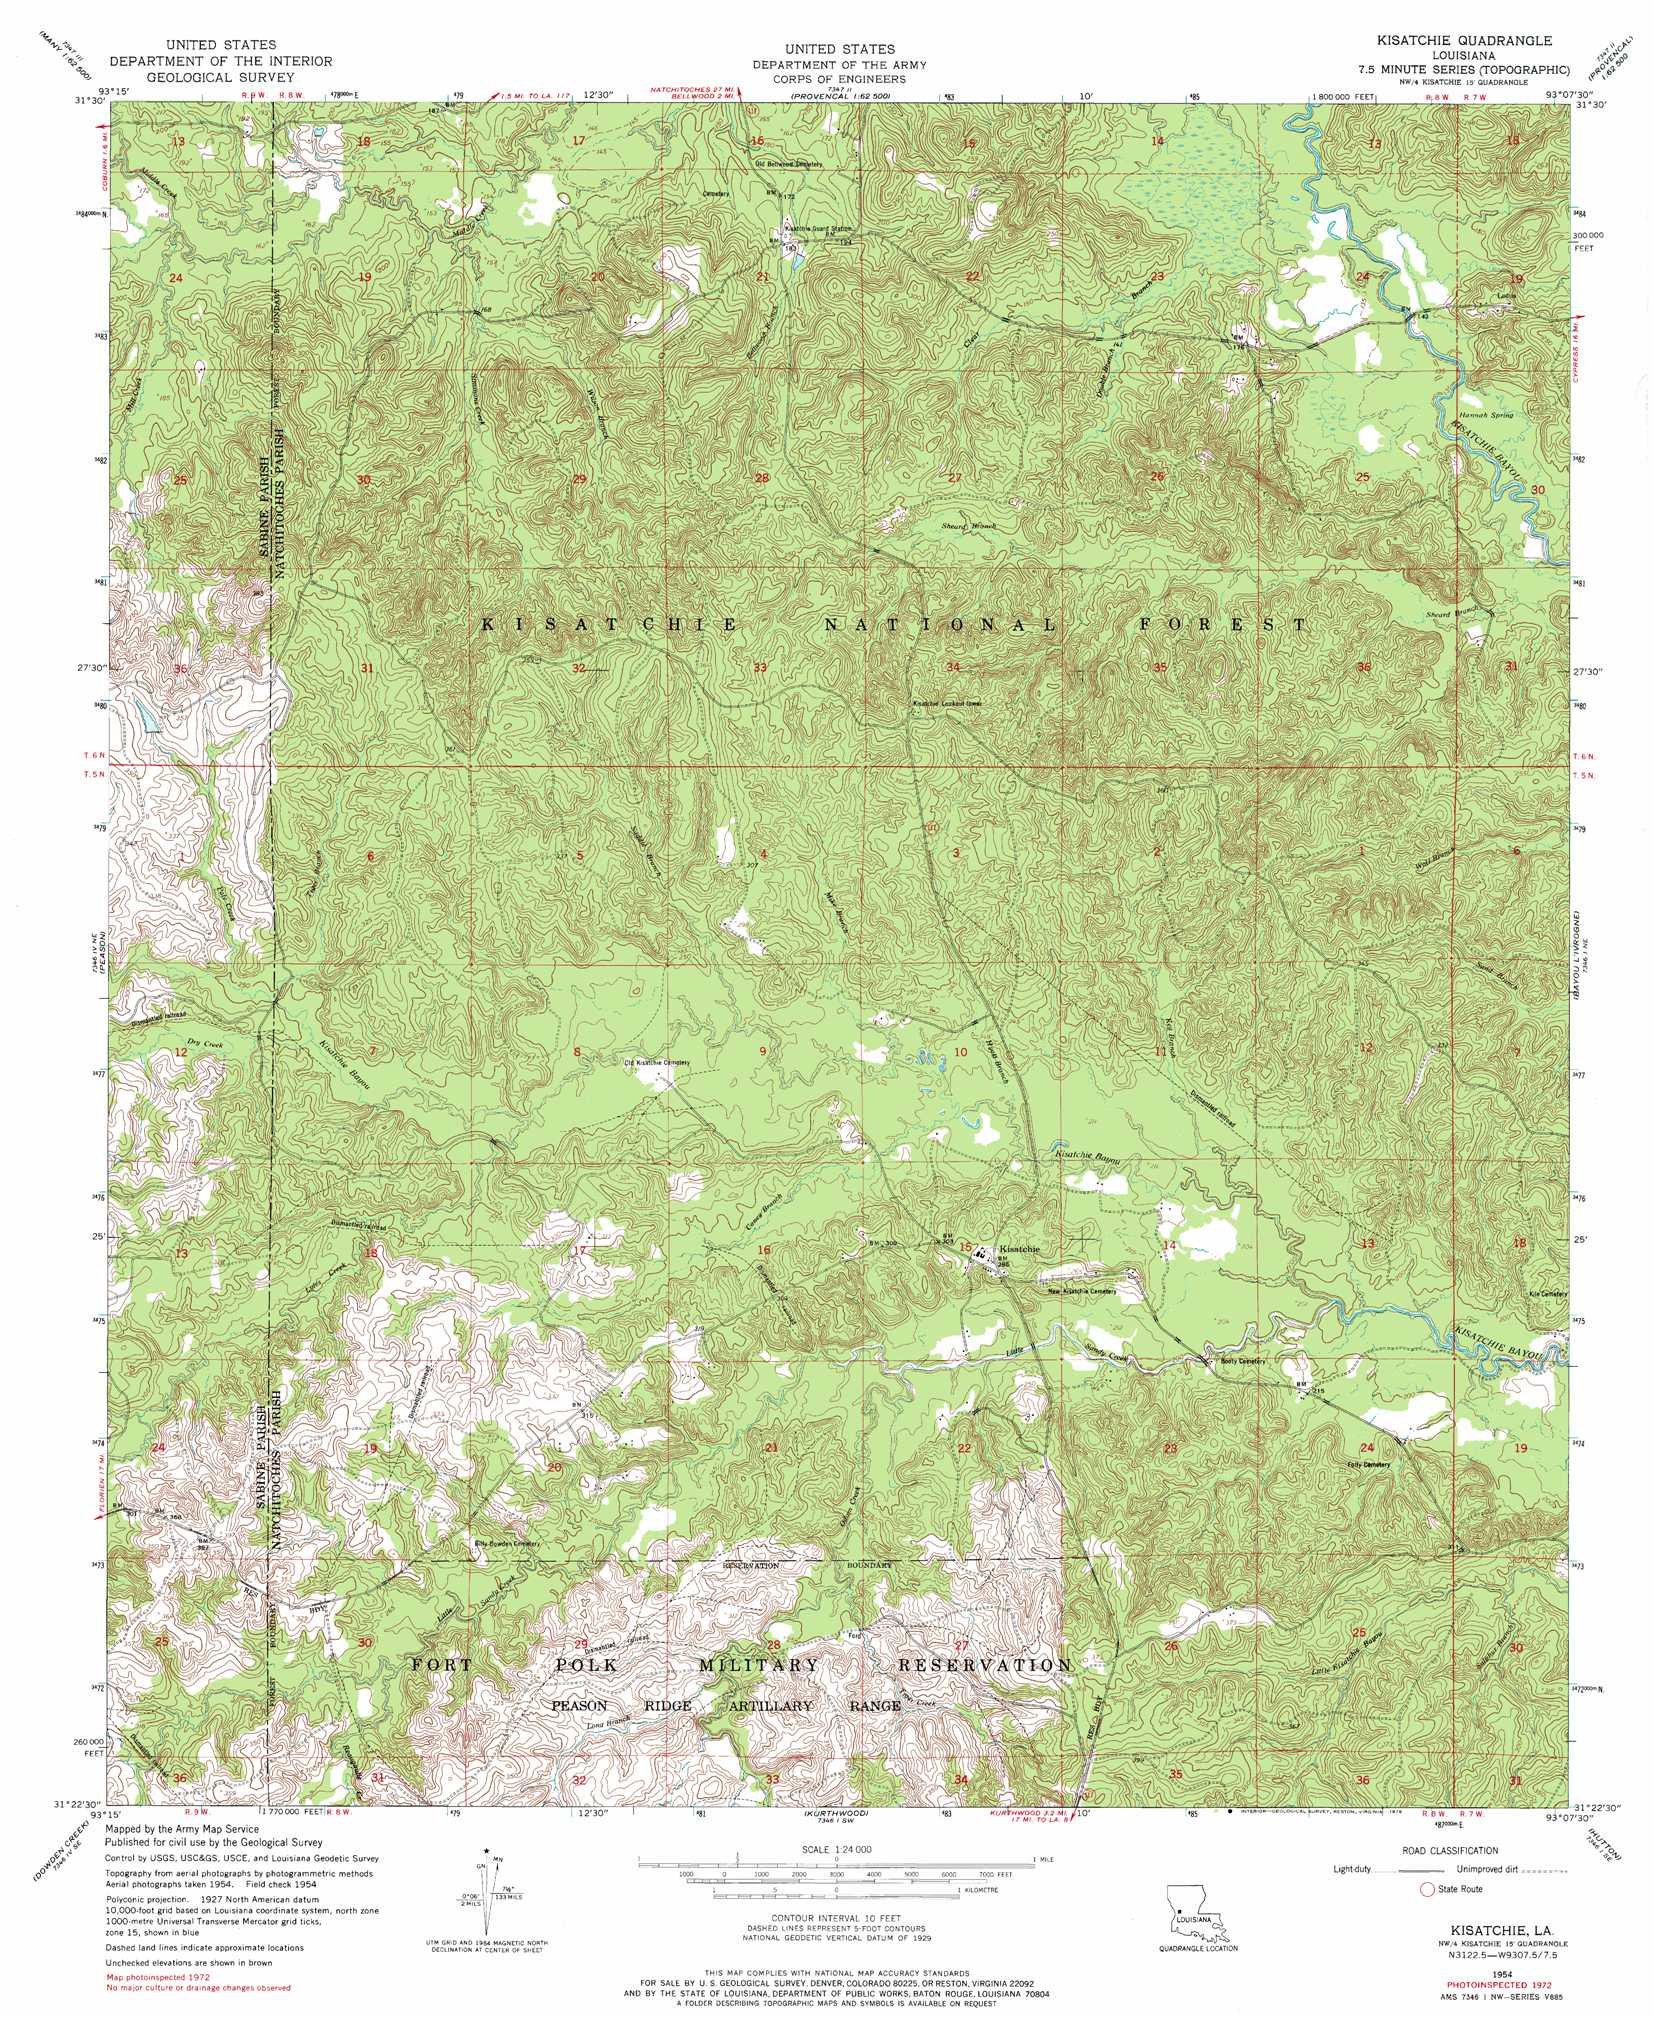 Kisatchie topographic map LA USGS Topo Quad 31093d2